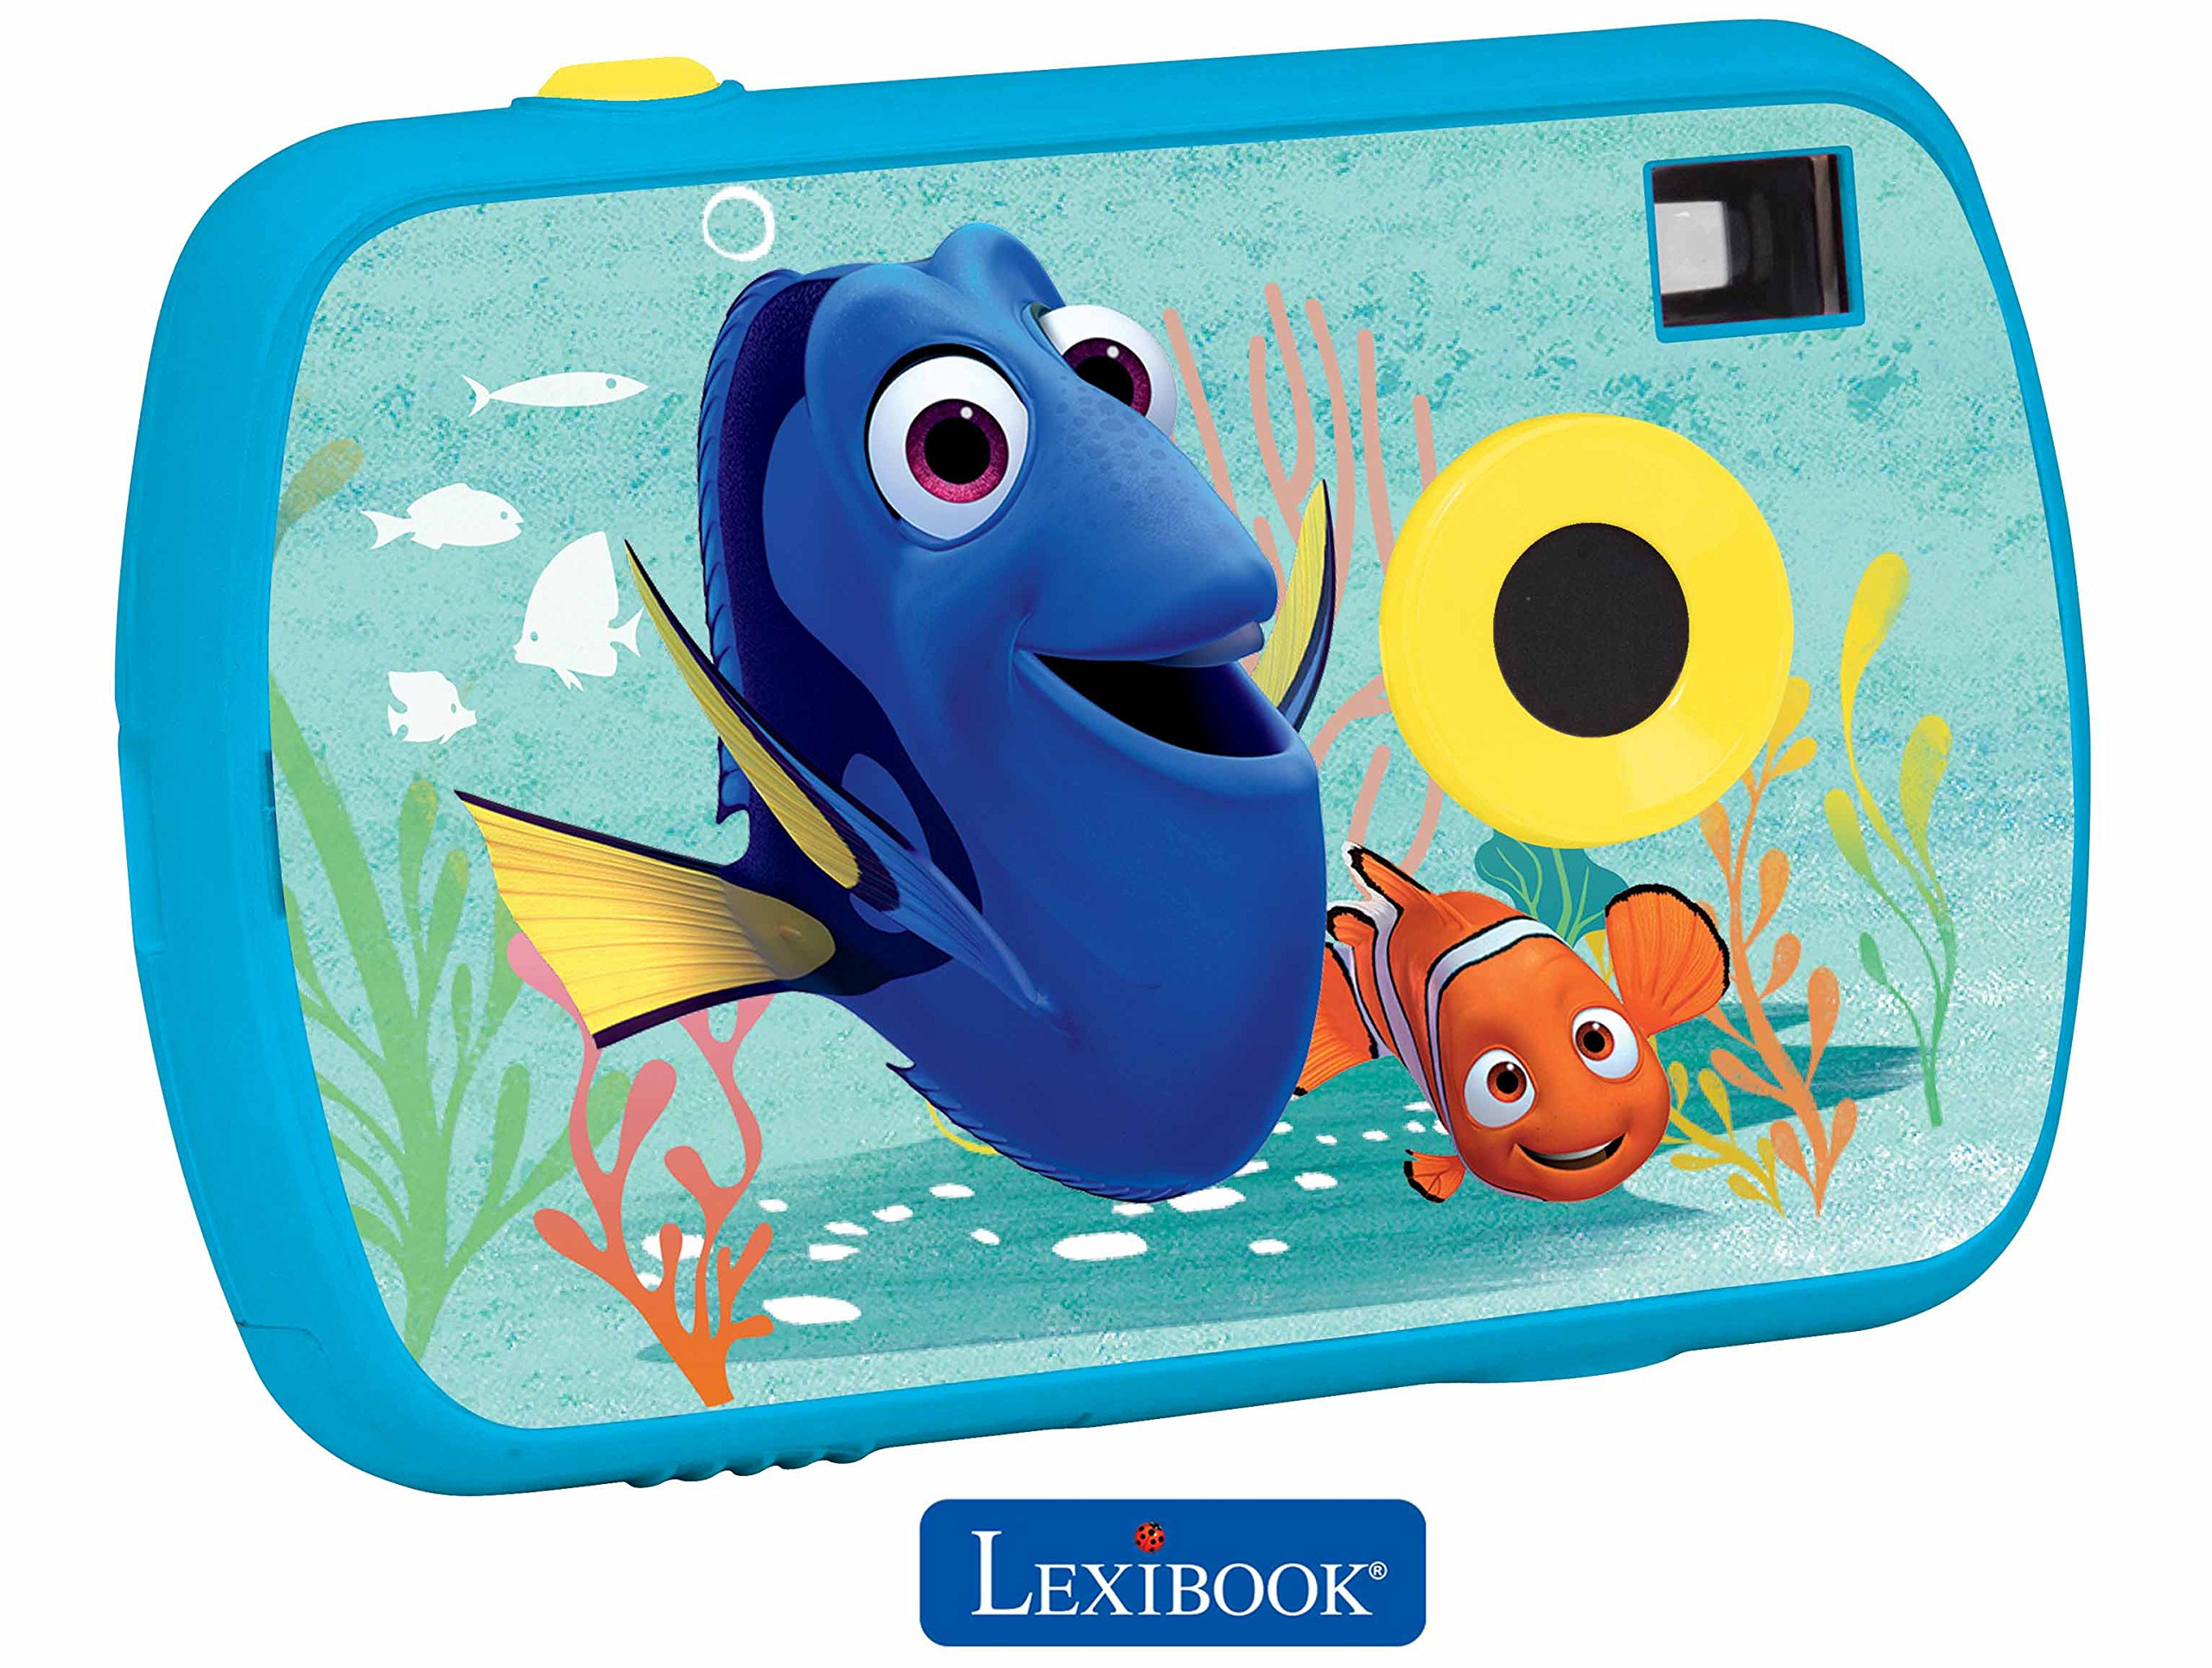 Finding Nemo Dory 1.3MP Digital Camera by Finding Dory (Image #4)